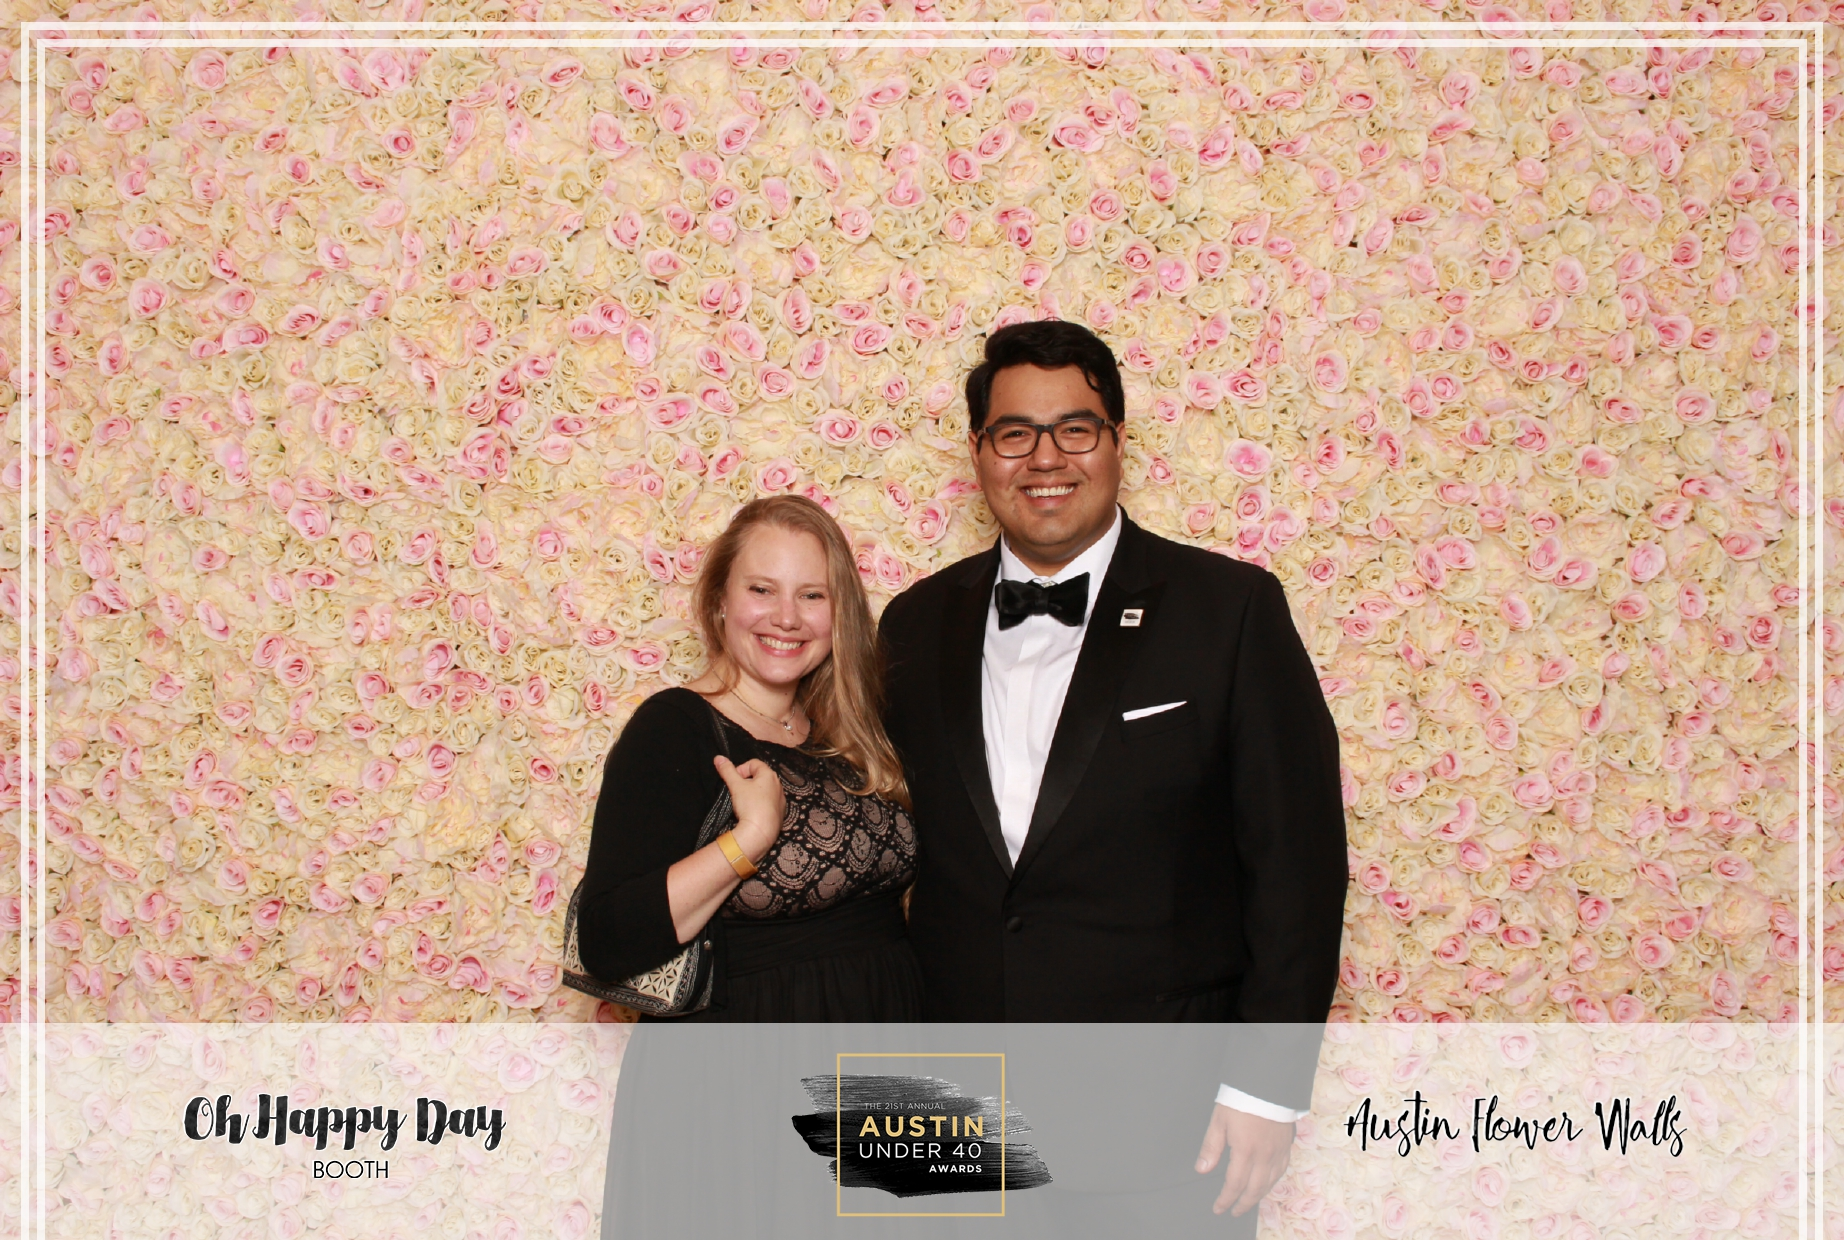 Oh Happy Day Booth - Austin Under 40-30.jpg